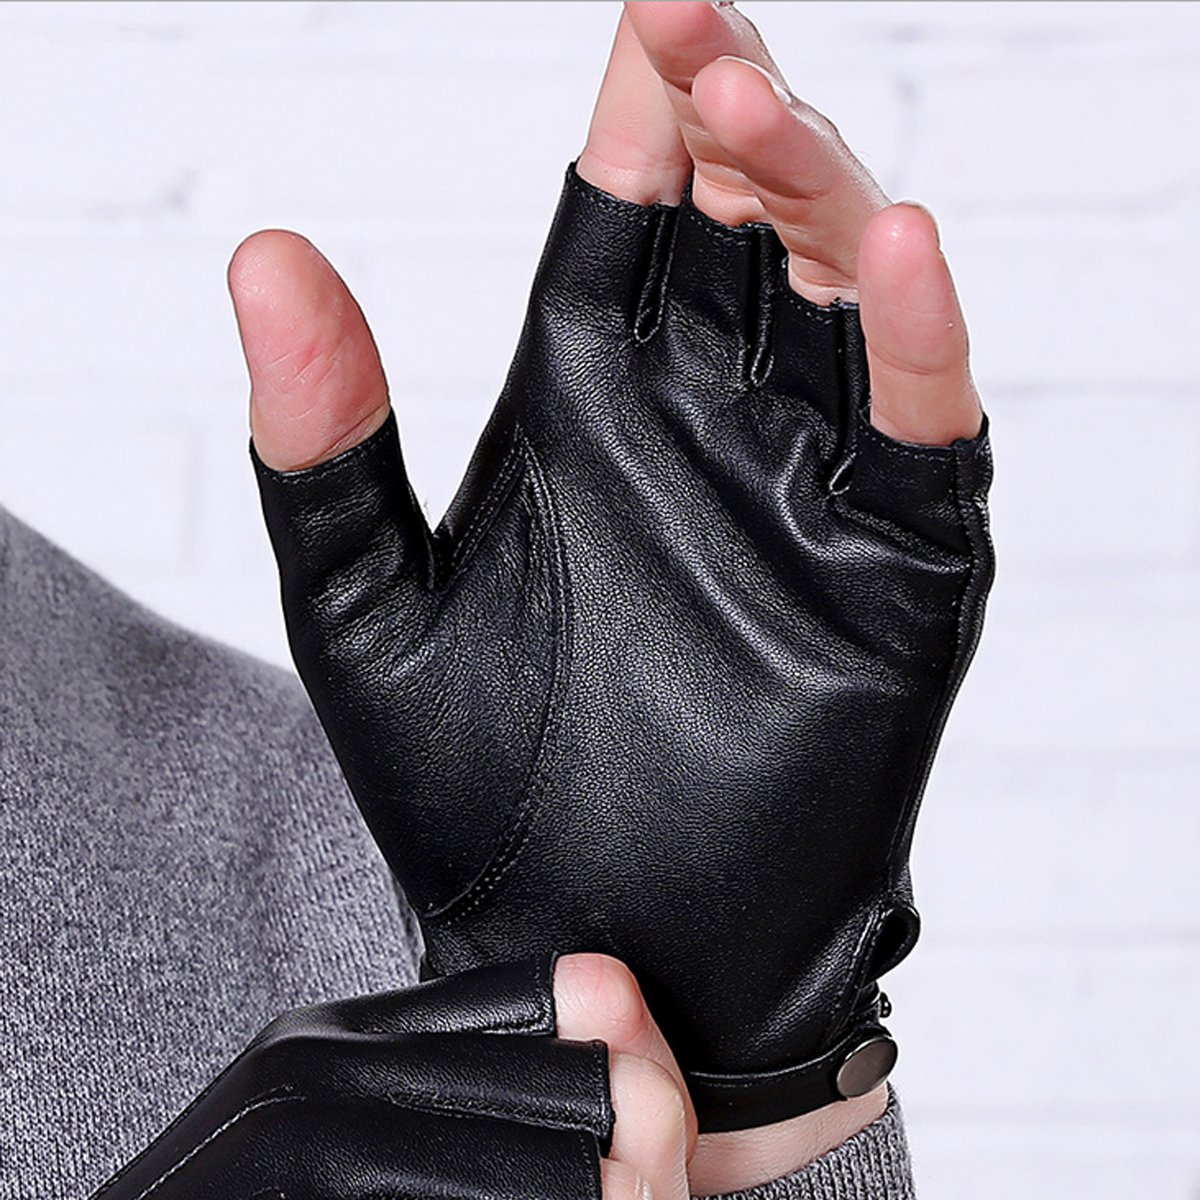 Fingerless Gloves PU Leather Gloves Touchscreen Texting Dress Driving Moto Glove for Men Women Teens (L) by gloveslove (Image #2)